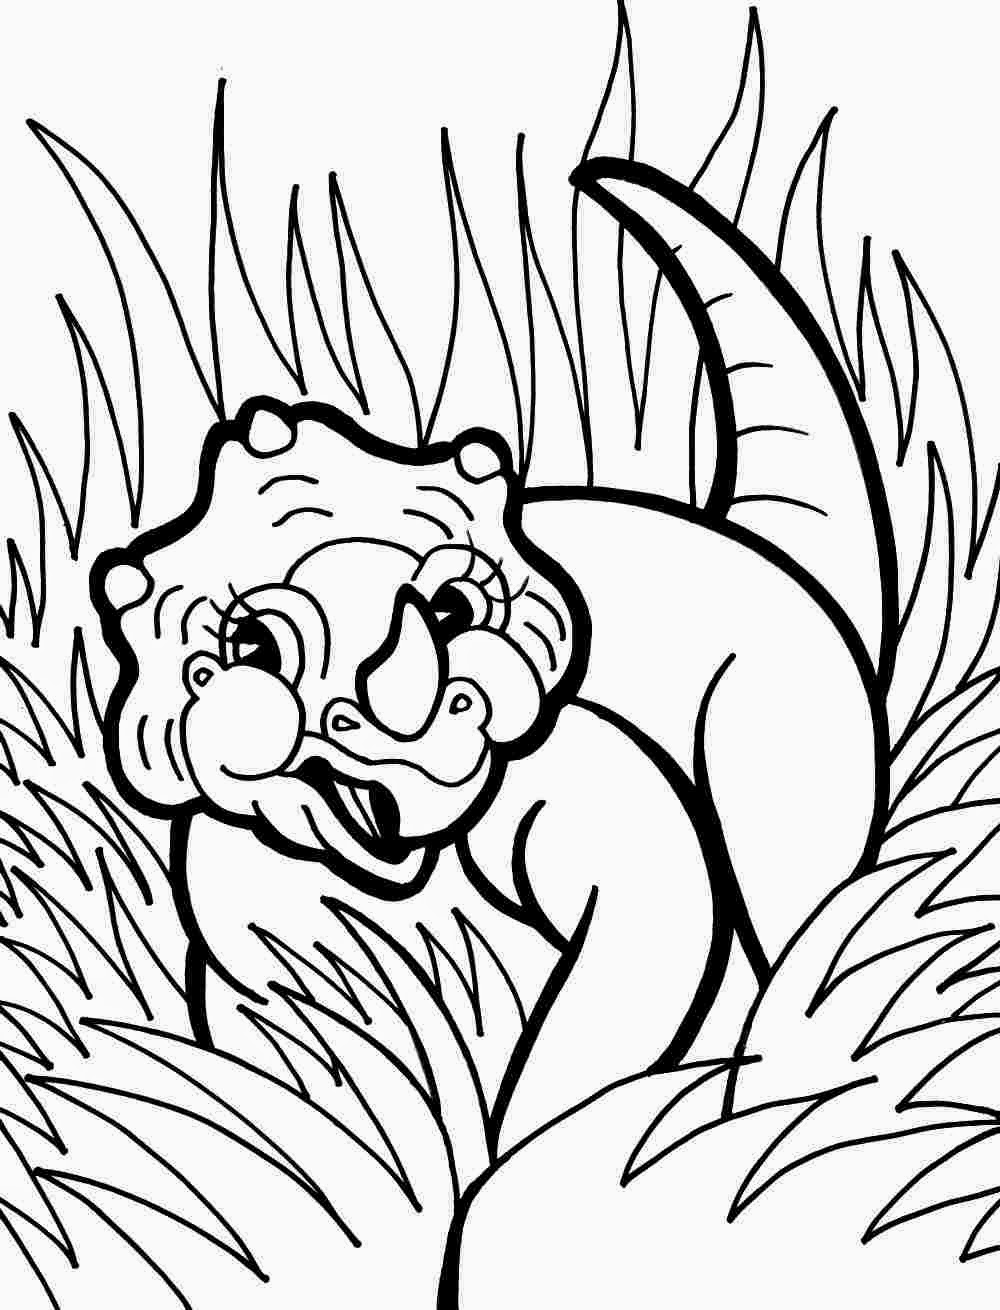 free printable coloring pages of dinosaurs coloring pages dinosaur free printable coloring pages of pages printable dinosaurs free coloring